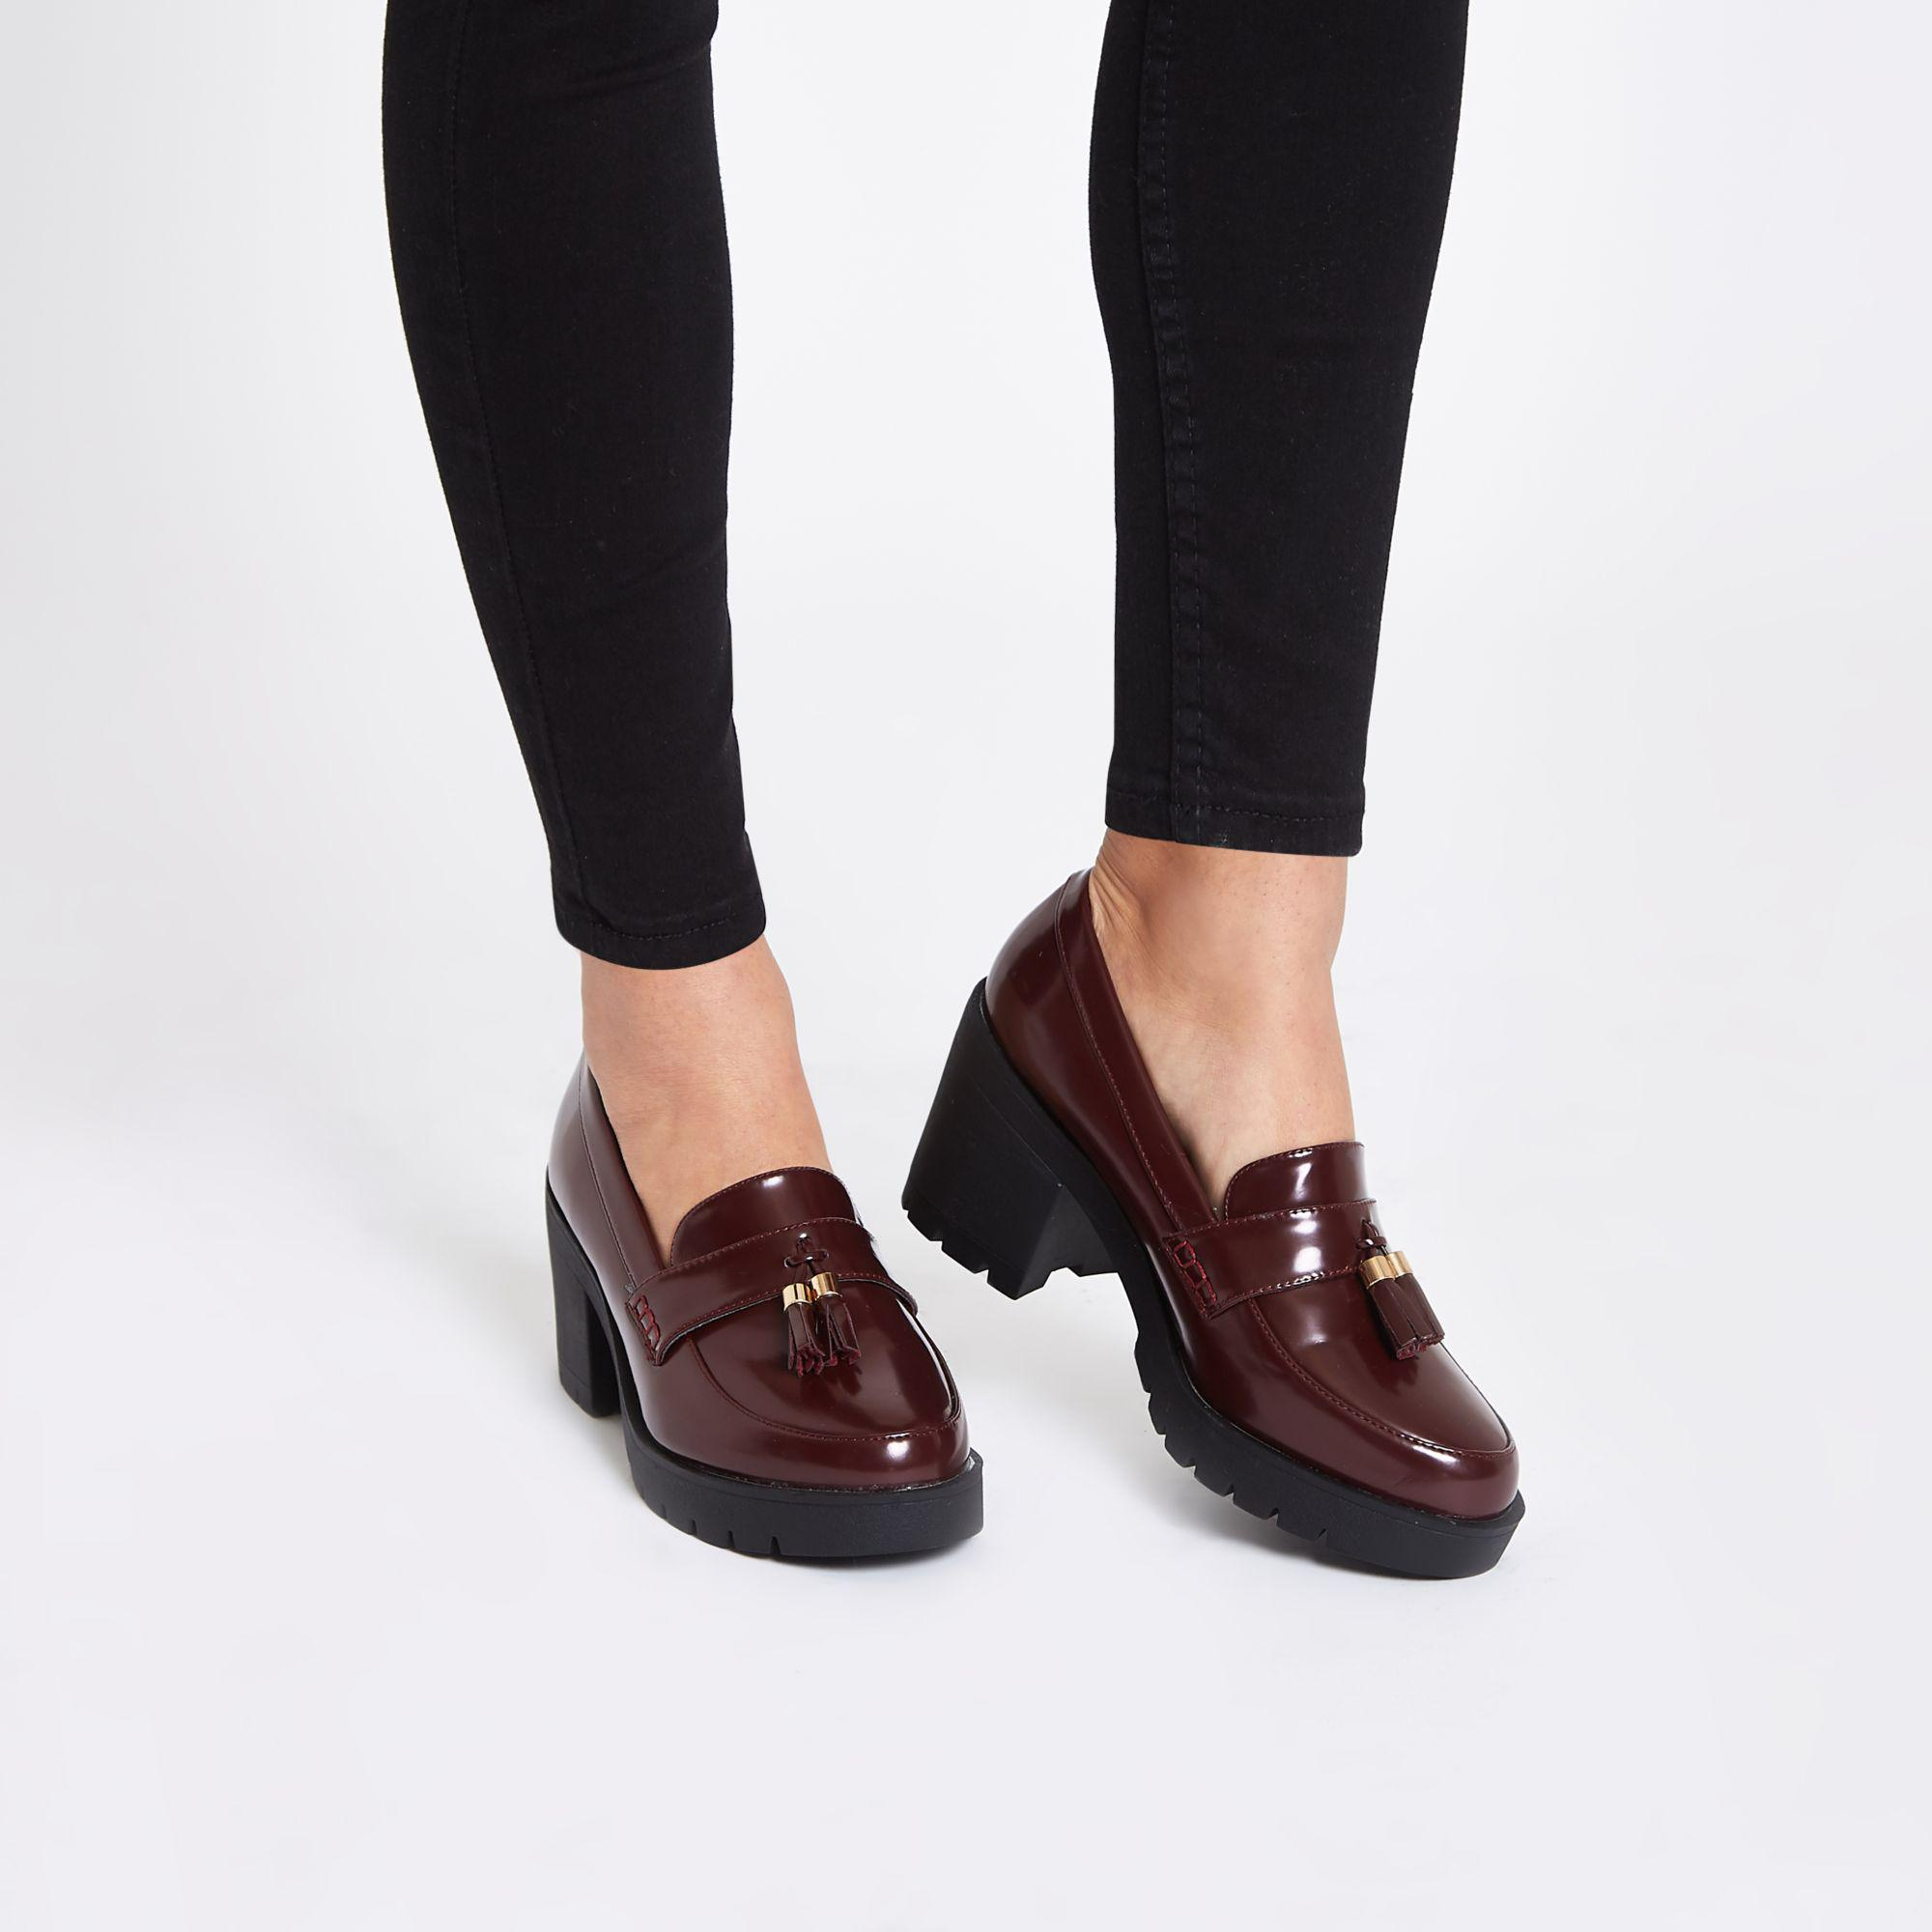 Lyst River Island Heeled Chunky Loafers In Burgundy Red D Shoes Slip On Mocasine Casual Black Gallery